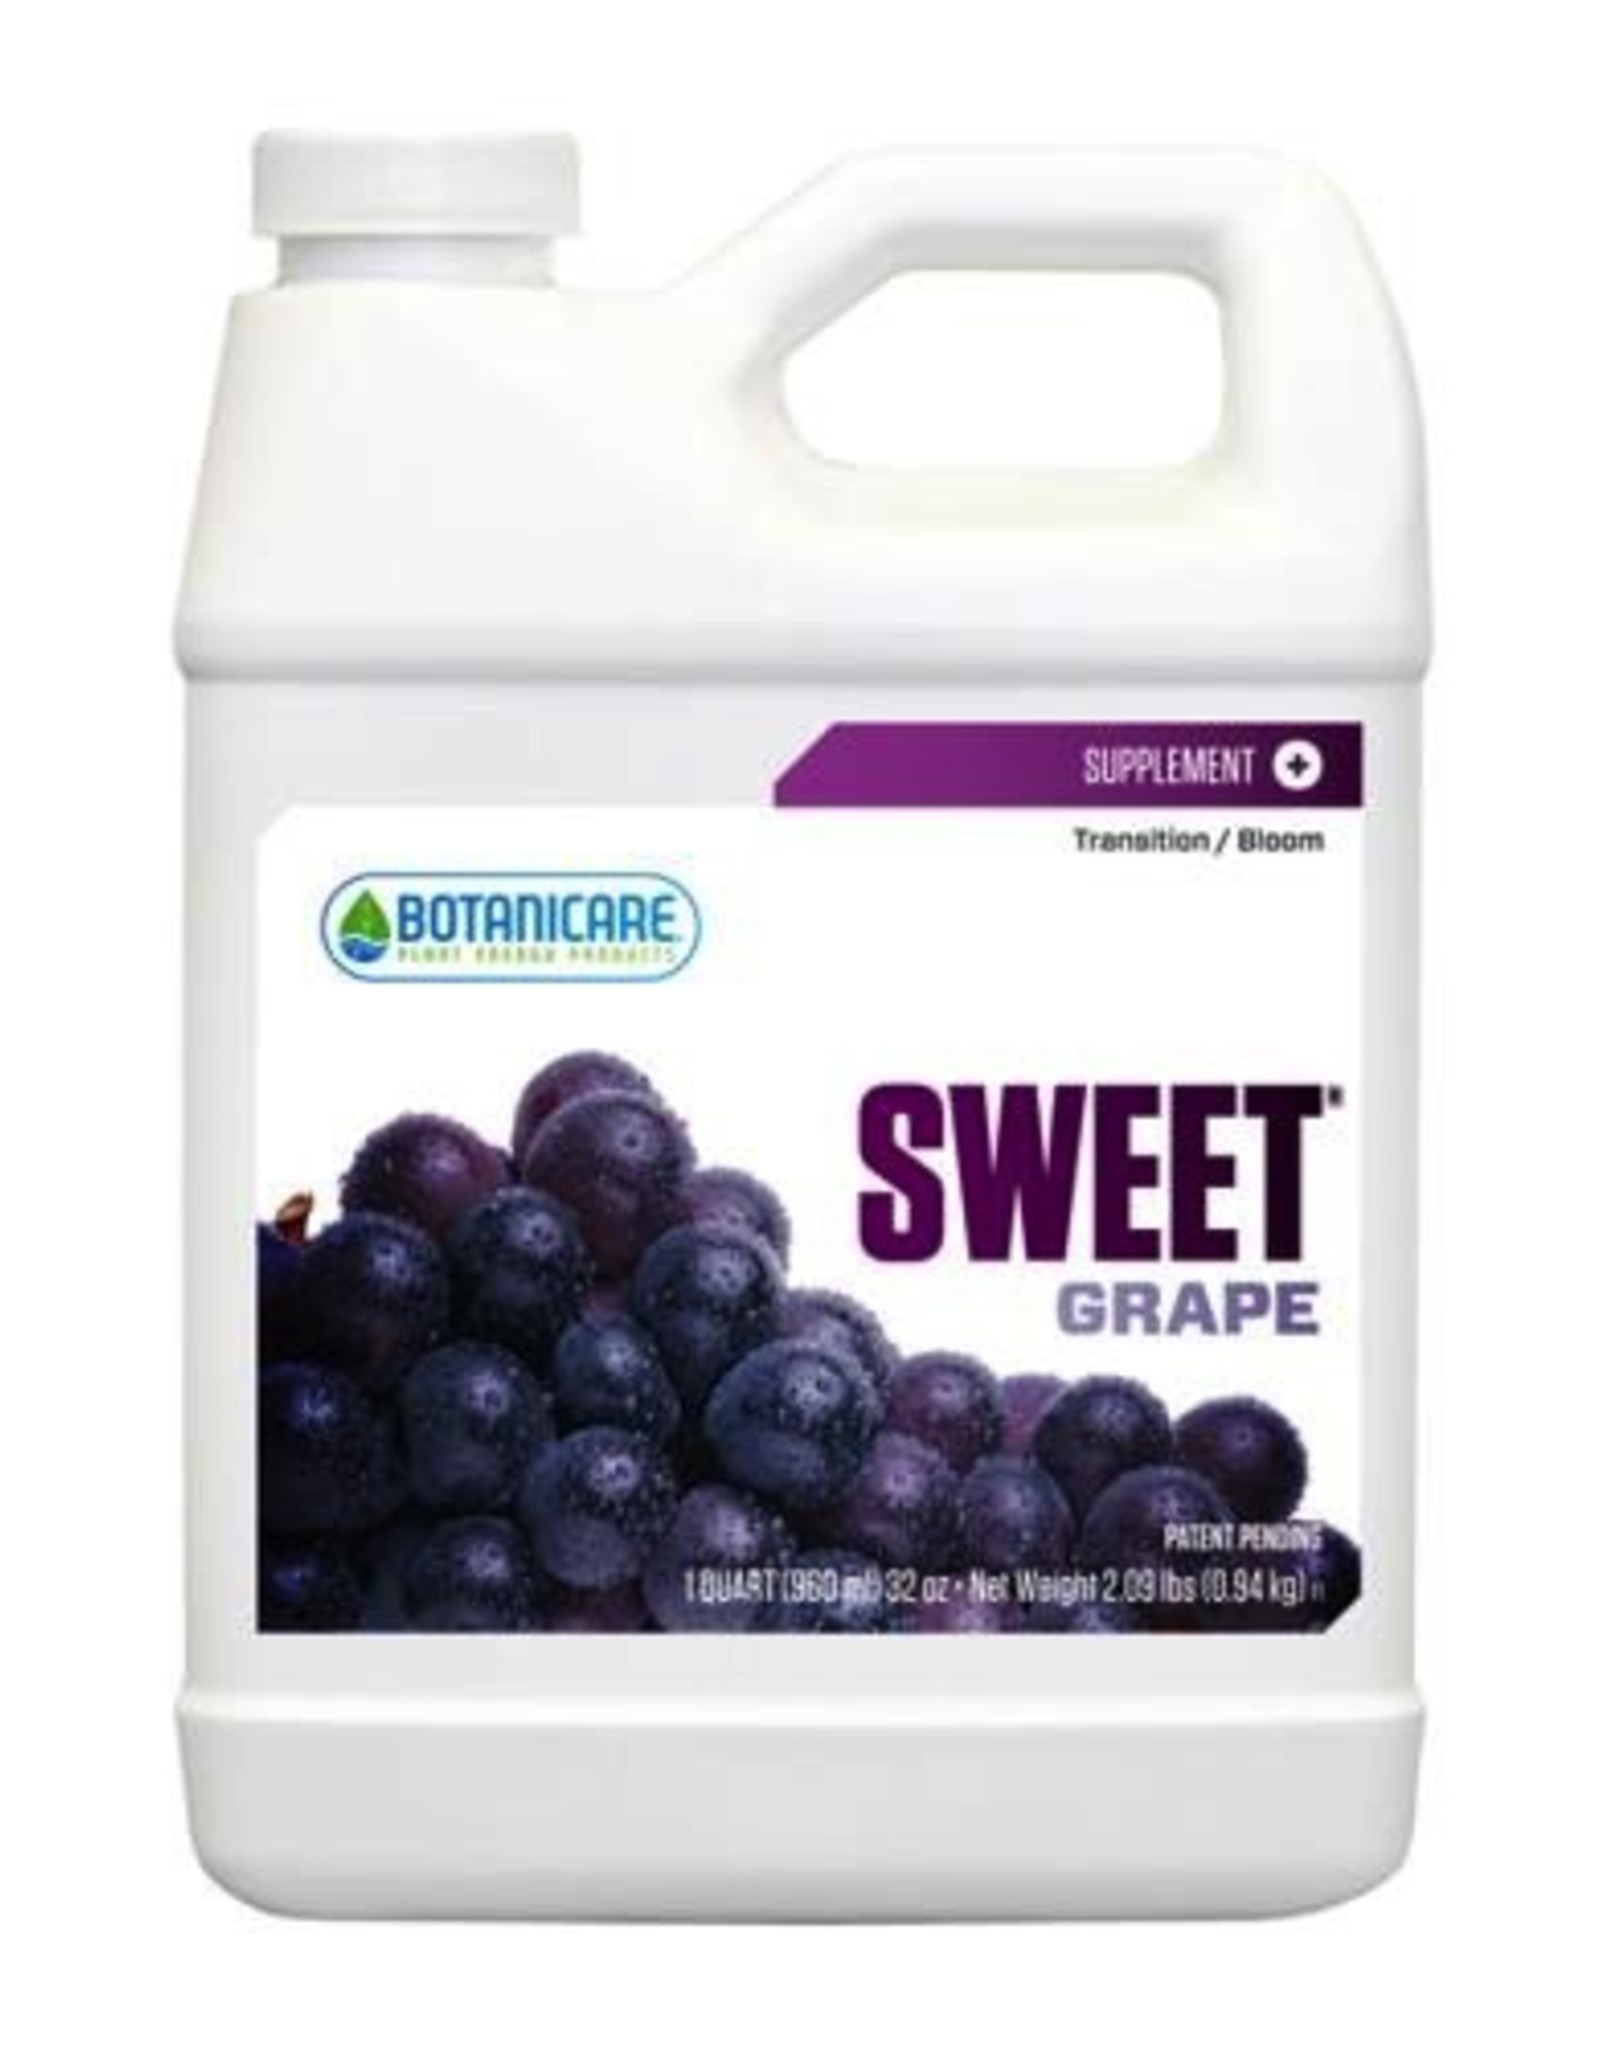 BOTANICARE SWEET GRAPE, the newest addition to the original line of flavored carbohydrate additives, equals its predecessor's performance by supplying plants with the vital energy they need during their entire growth cycle. Sweet Grape contains select carbohydrates,